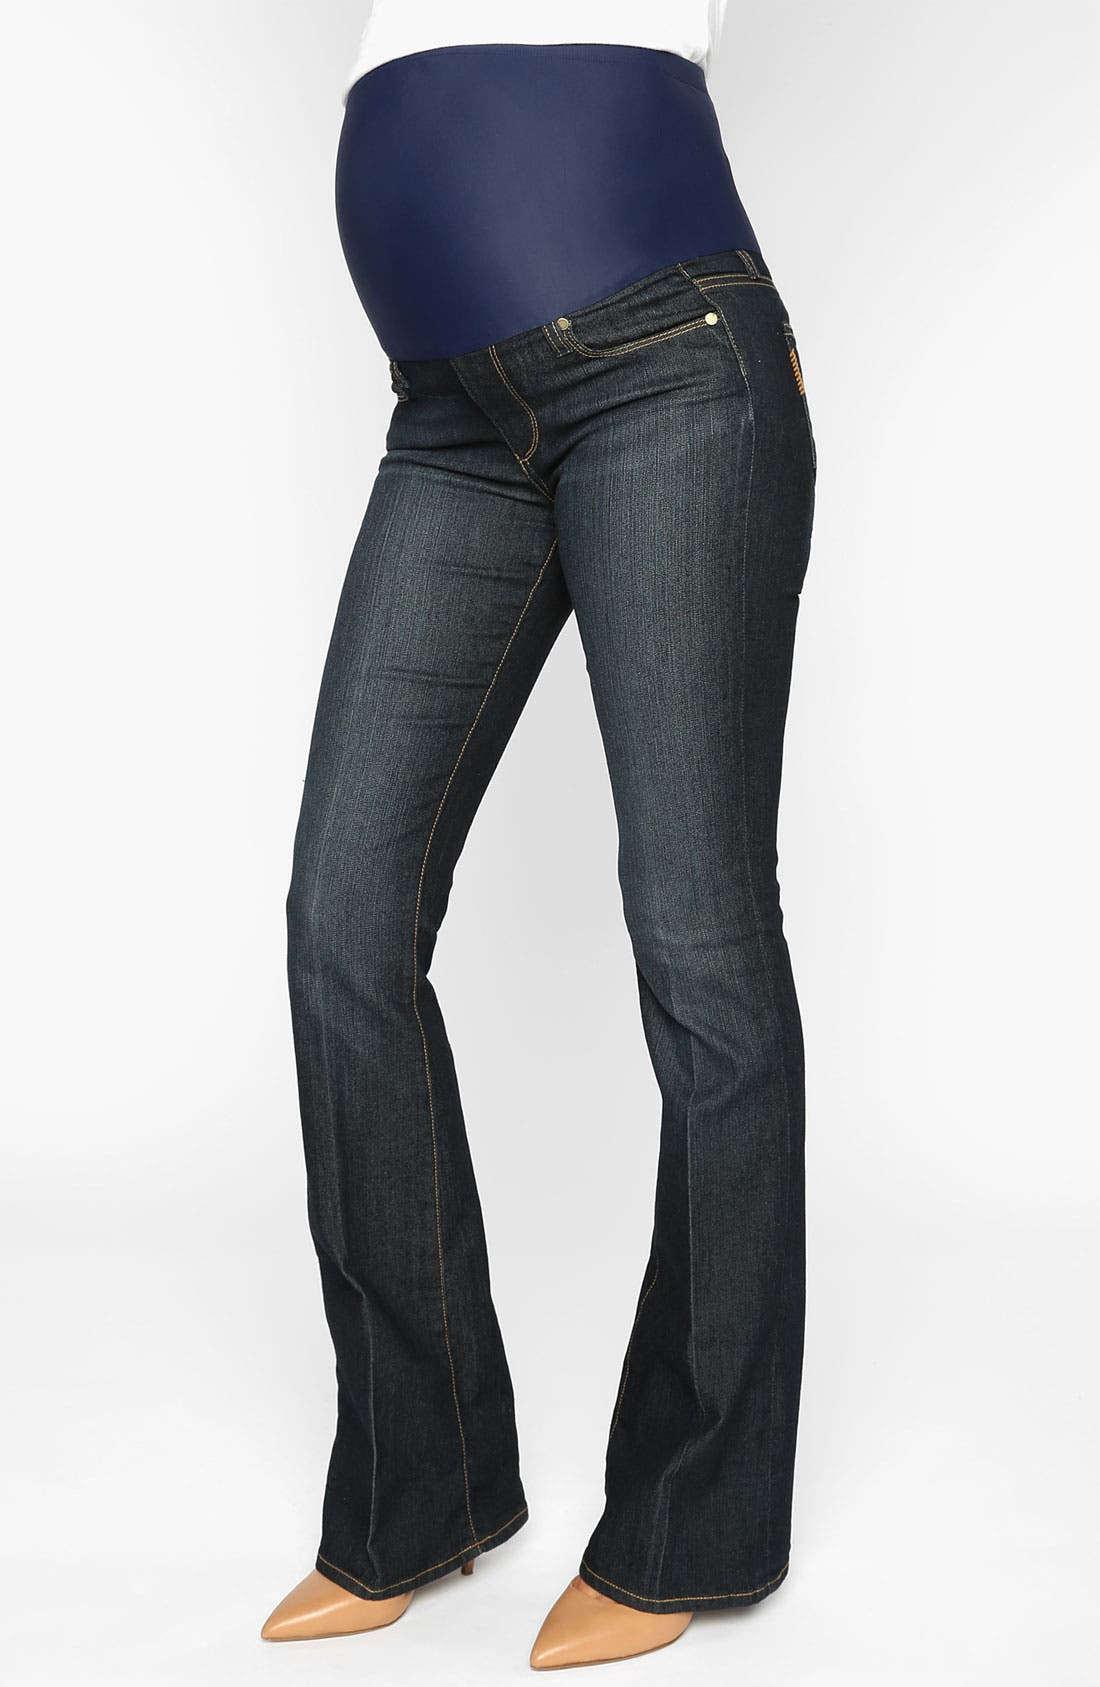 Alternate Image 1 Selected - Paige Denim 'Skyline' Maternity Bootcut Jeans (Twilight)